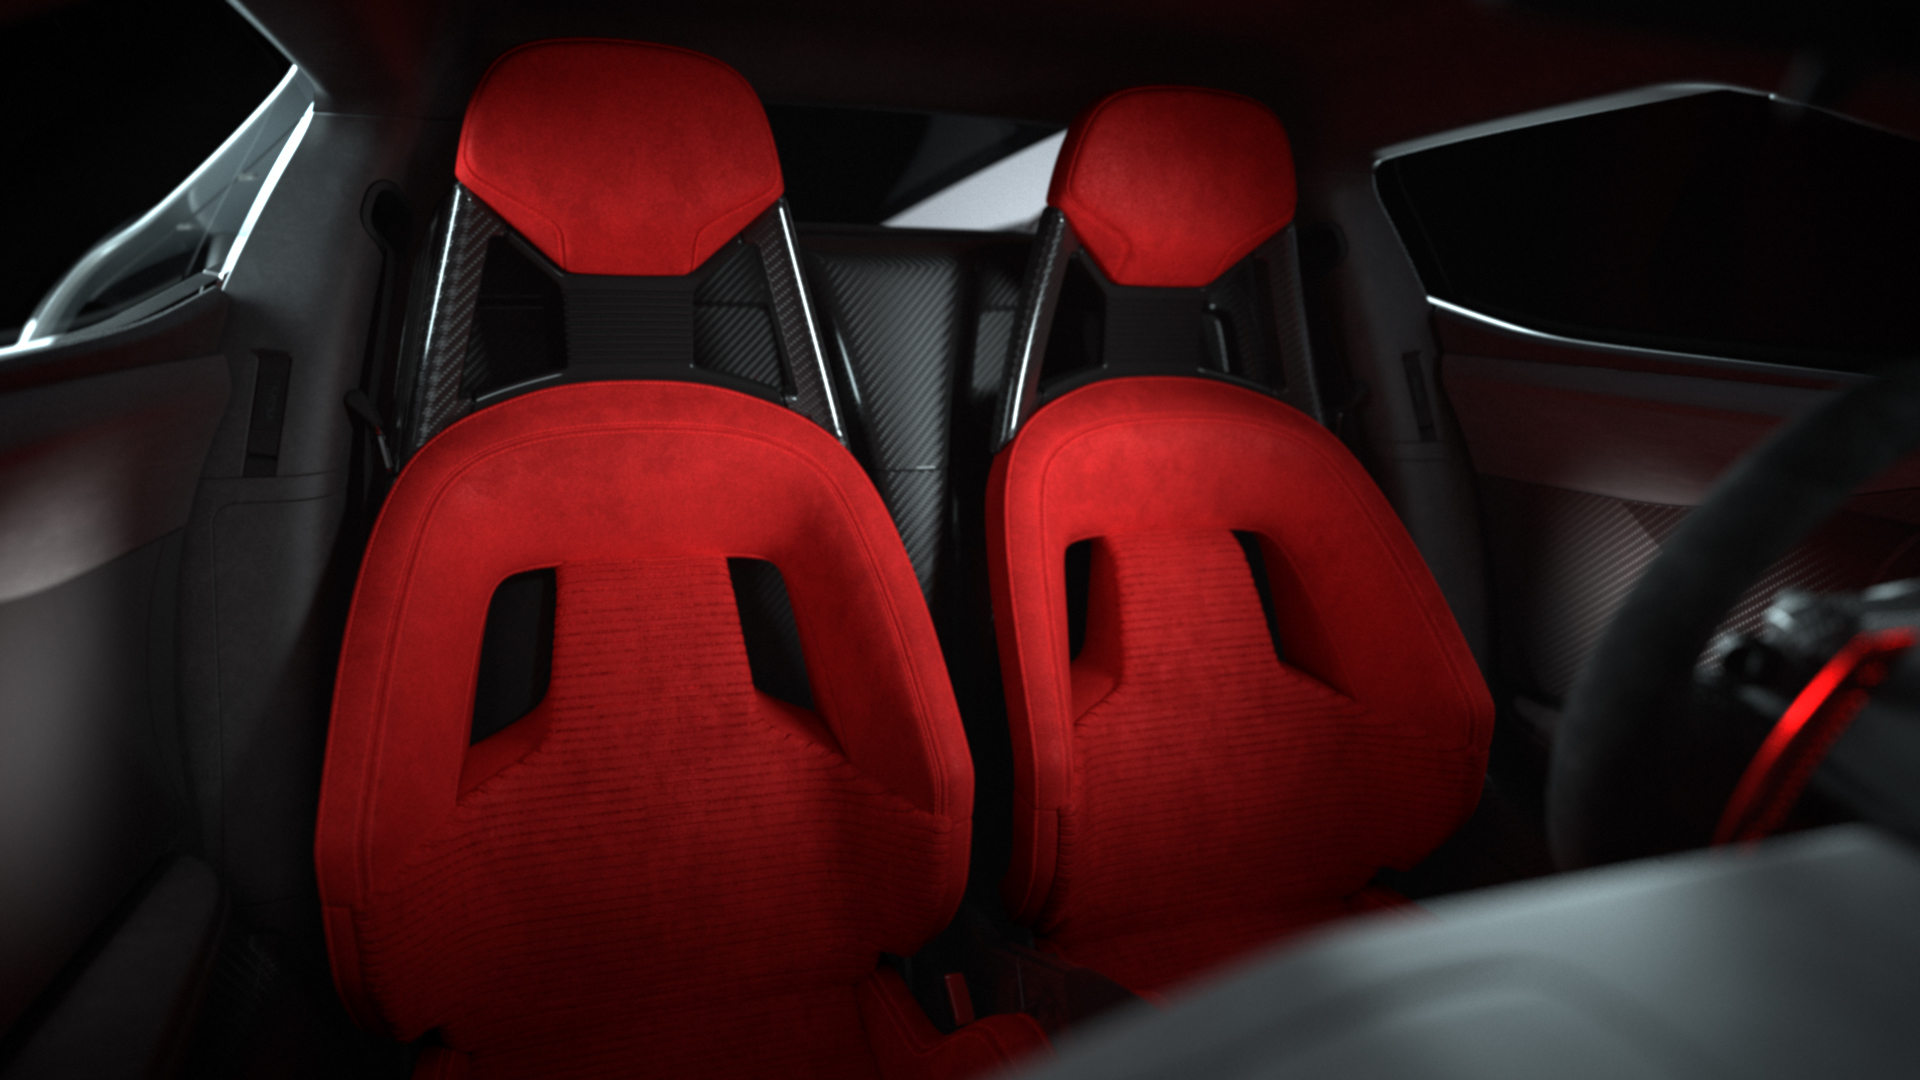 Ford GT Heritage Edition seats